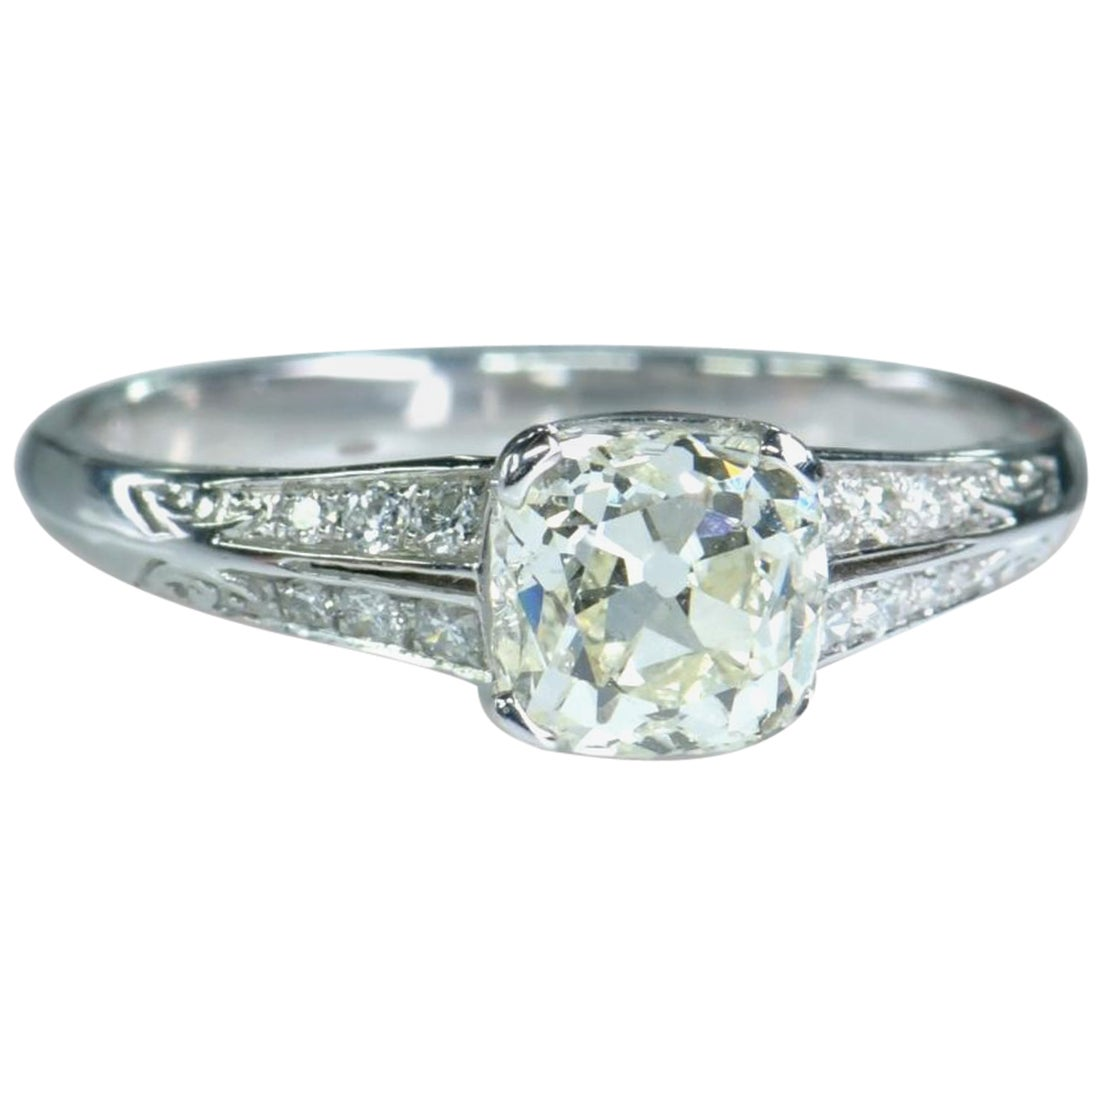 Art Deco Style 18 Karat White Gold and Diamond Solitaire Ring